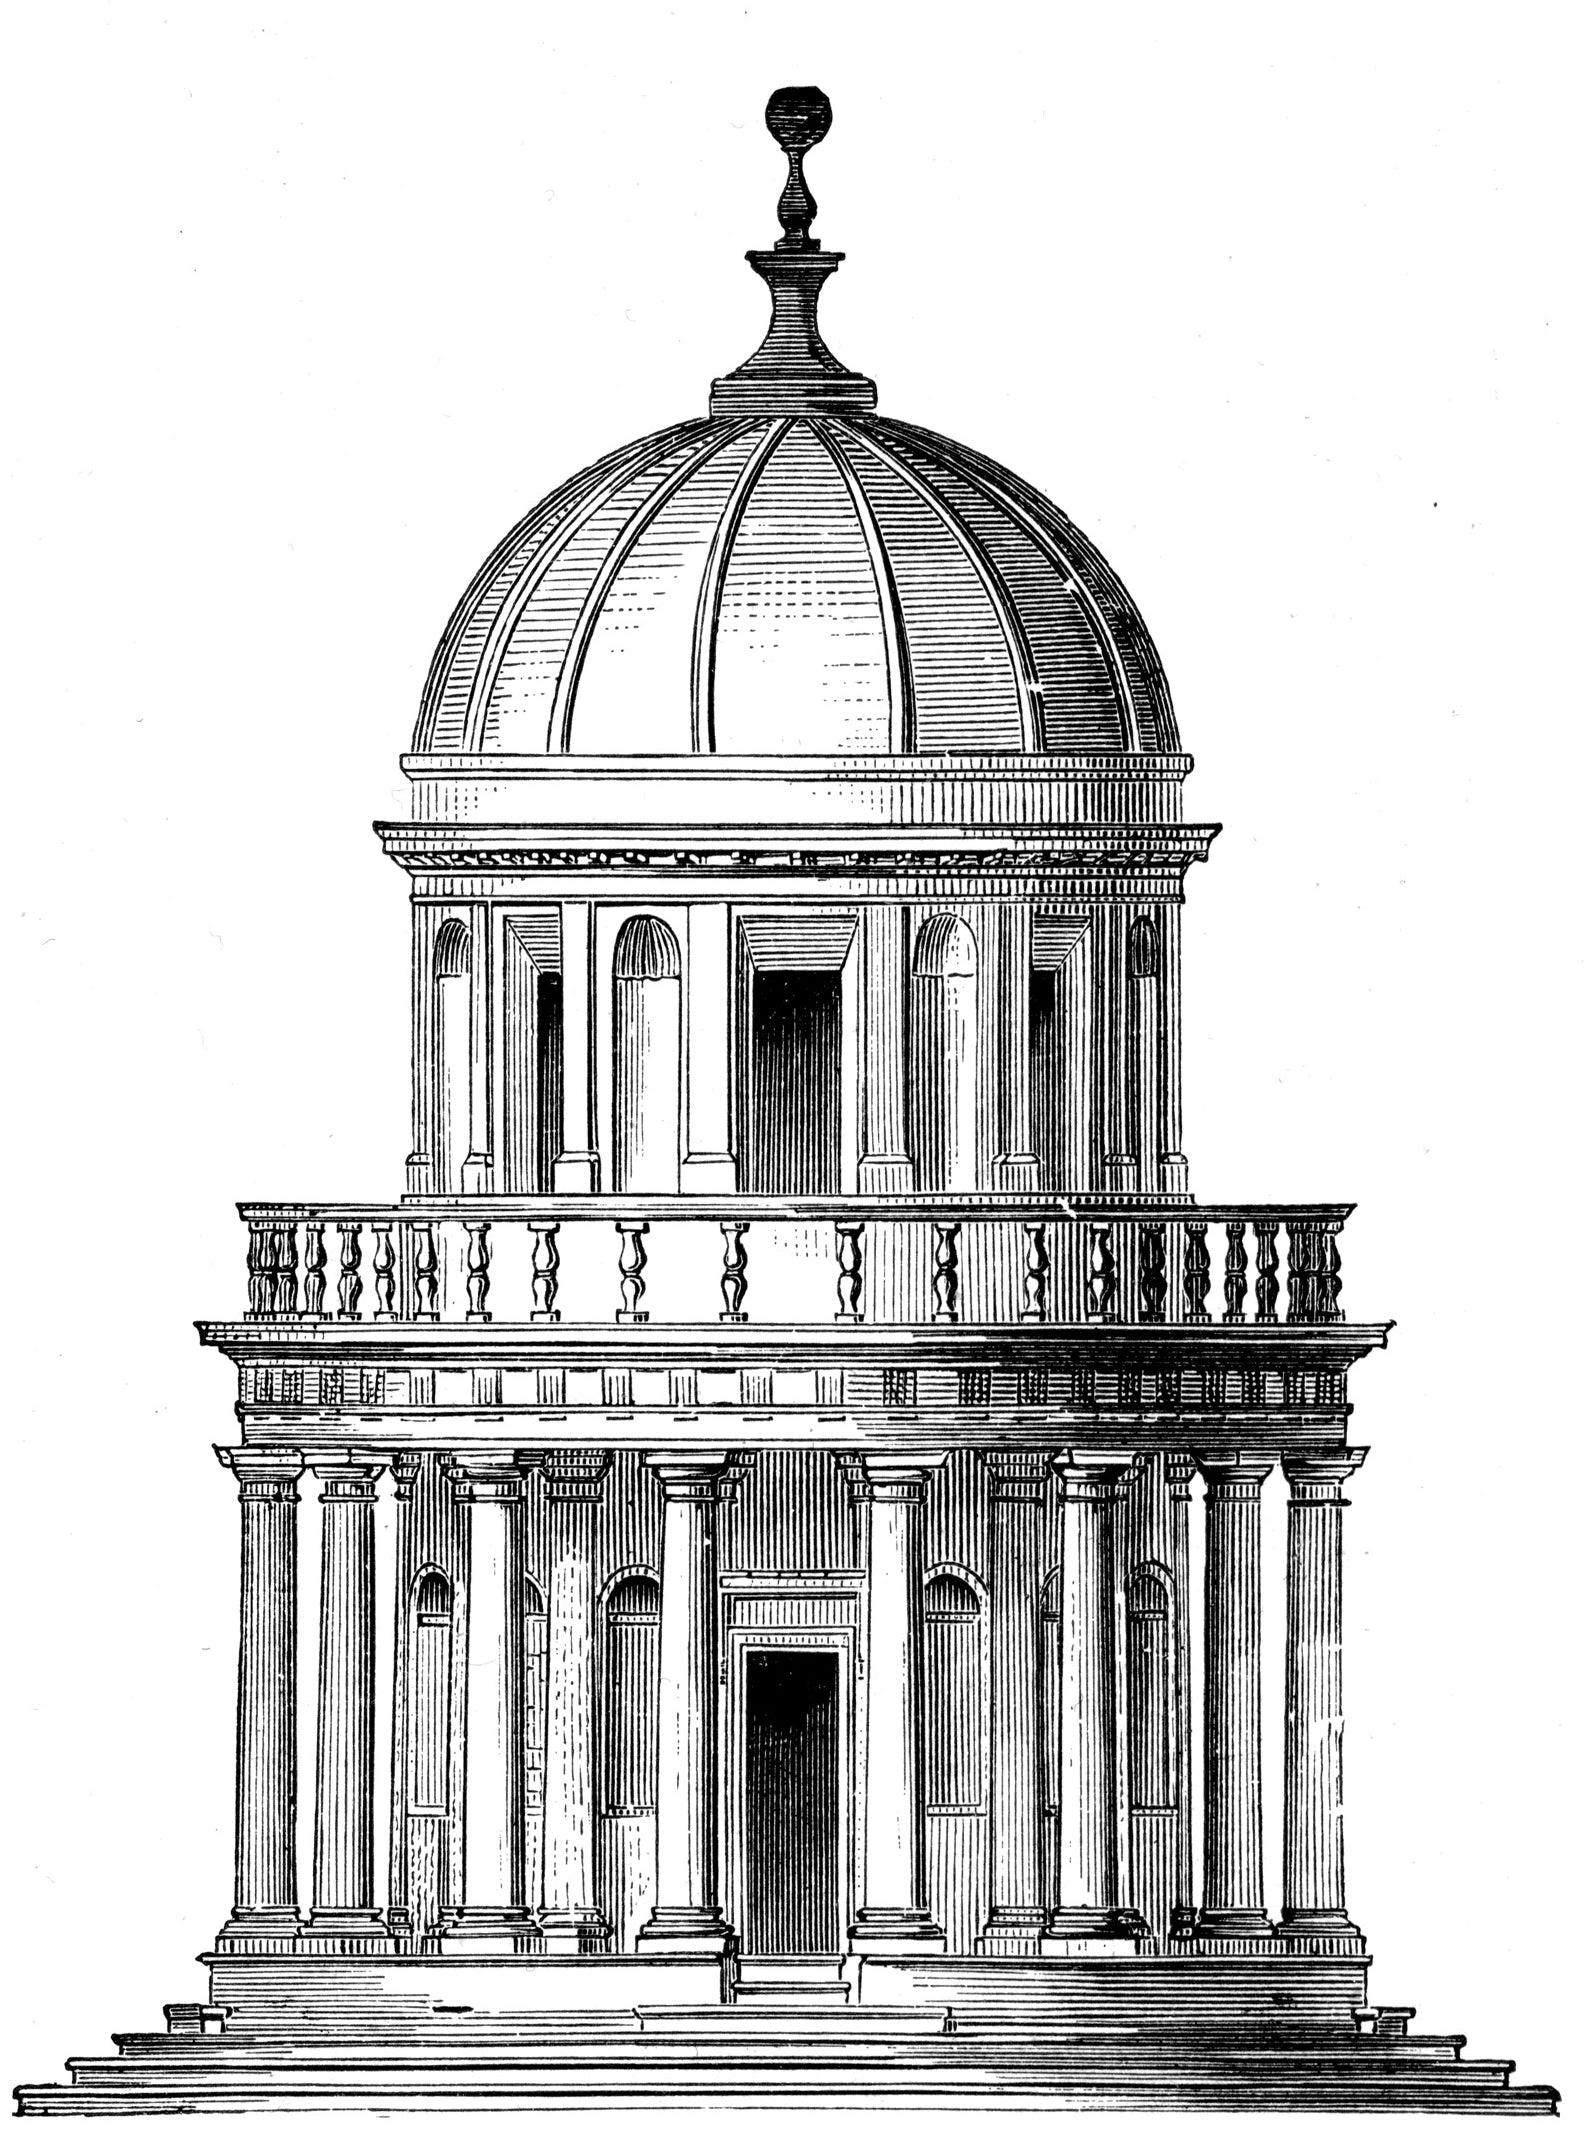 dome black and white classical sketch for brockwell incorporated's illustrated glossary of architectural terms